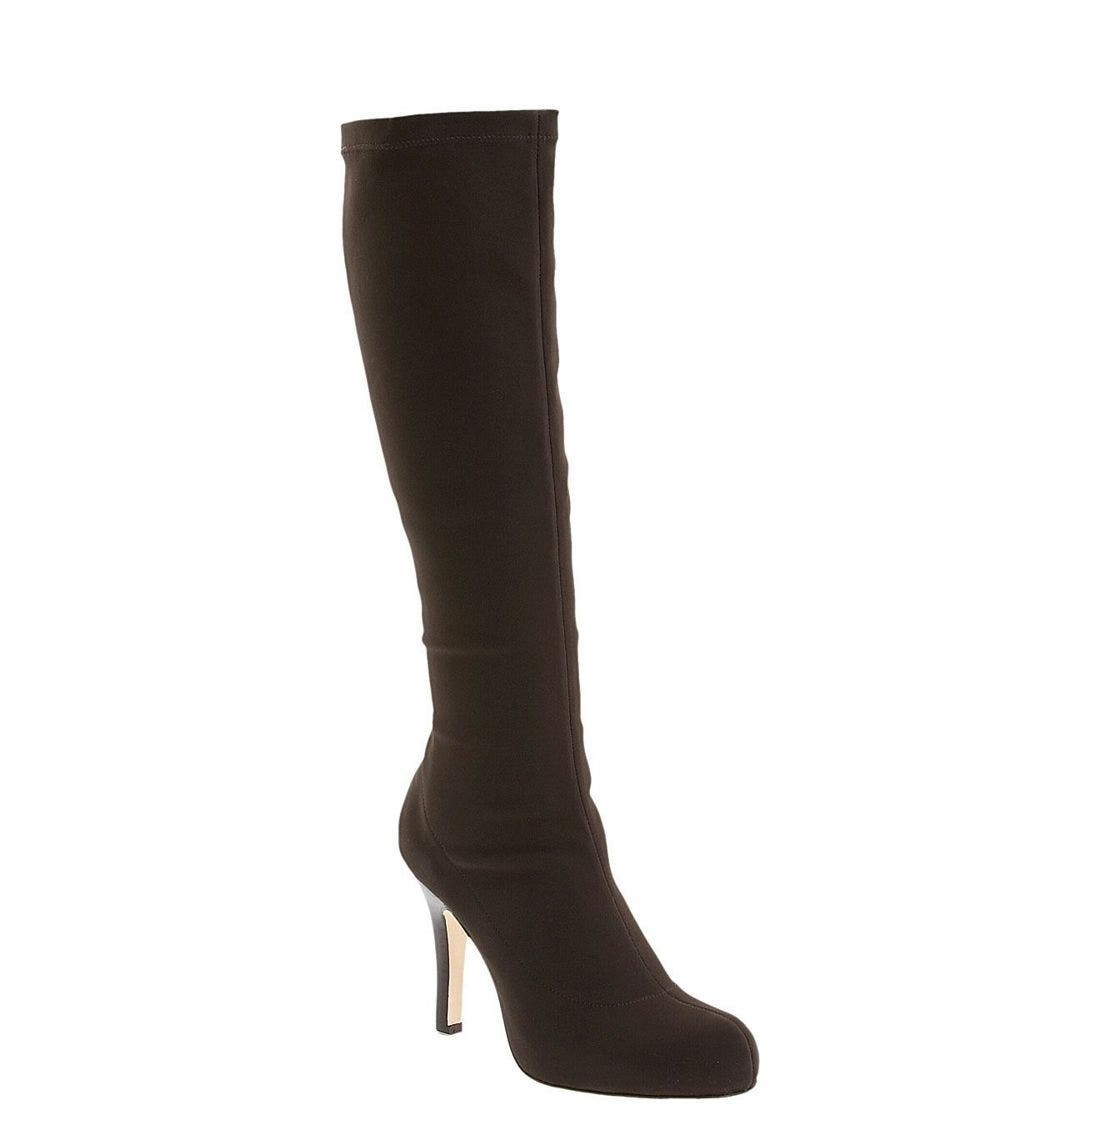 Main Image - Martinez Valero 'Dare' Tall Stretch Boot